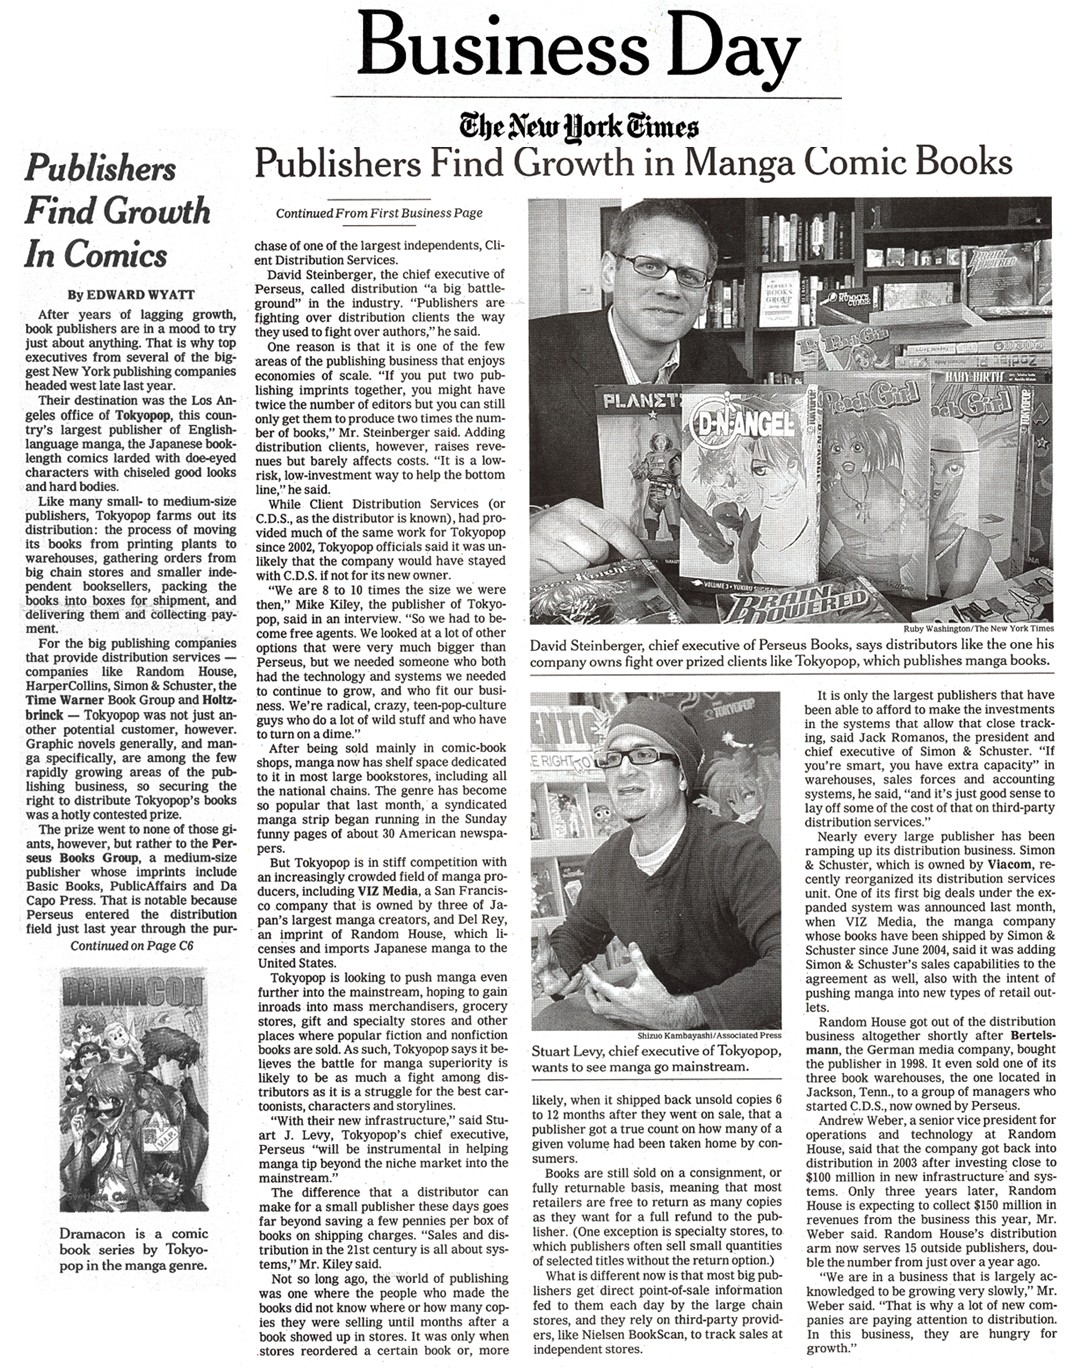 Article in New York Times, February 2006